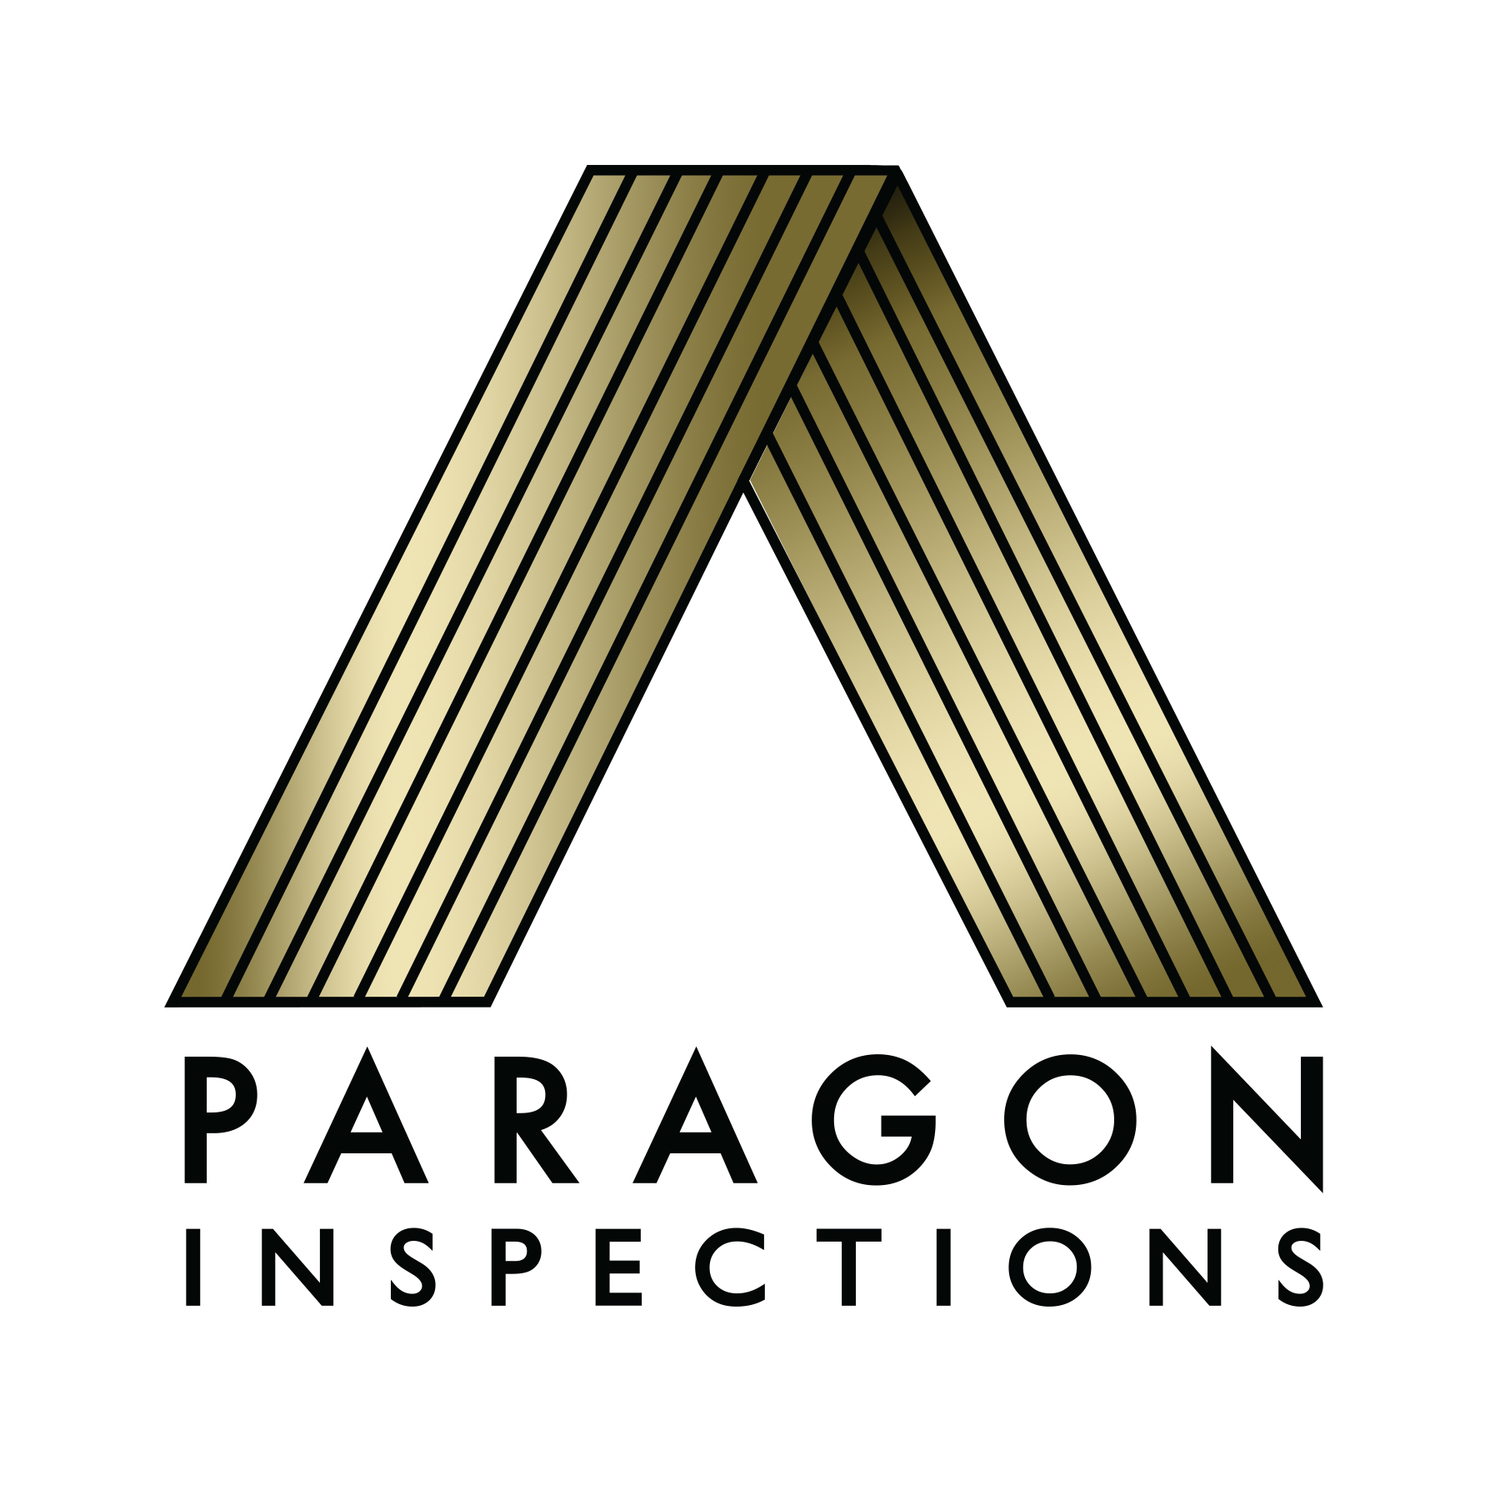 Paragon Inspections, LLC